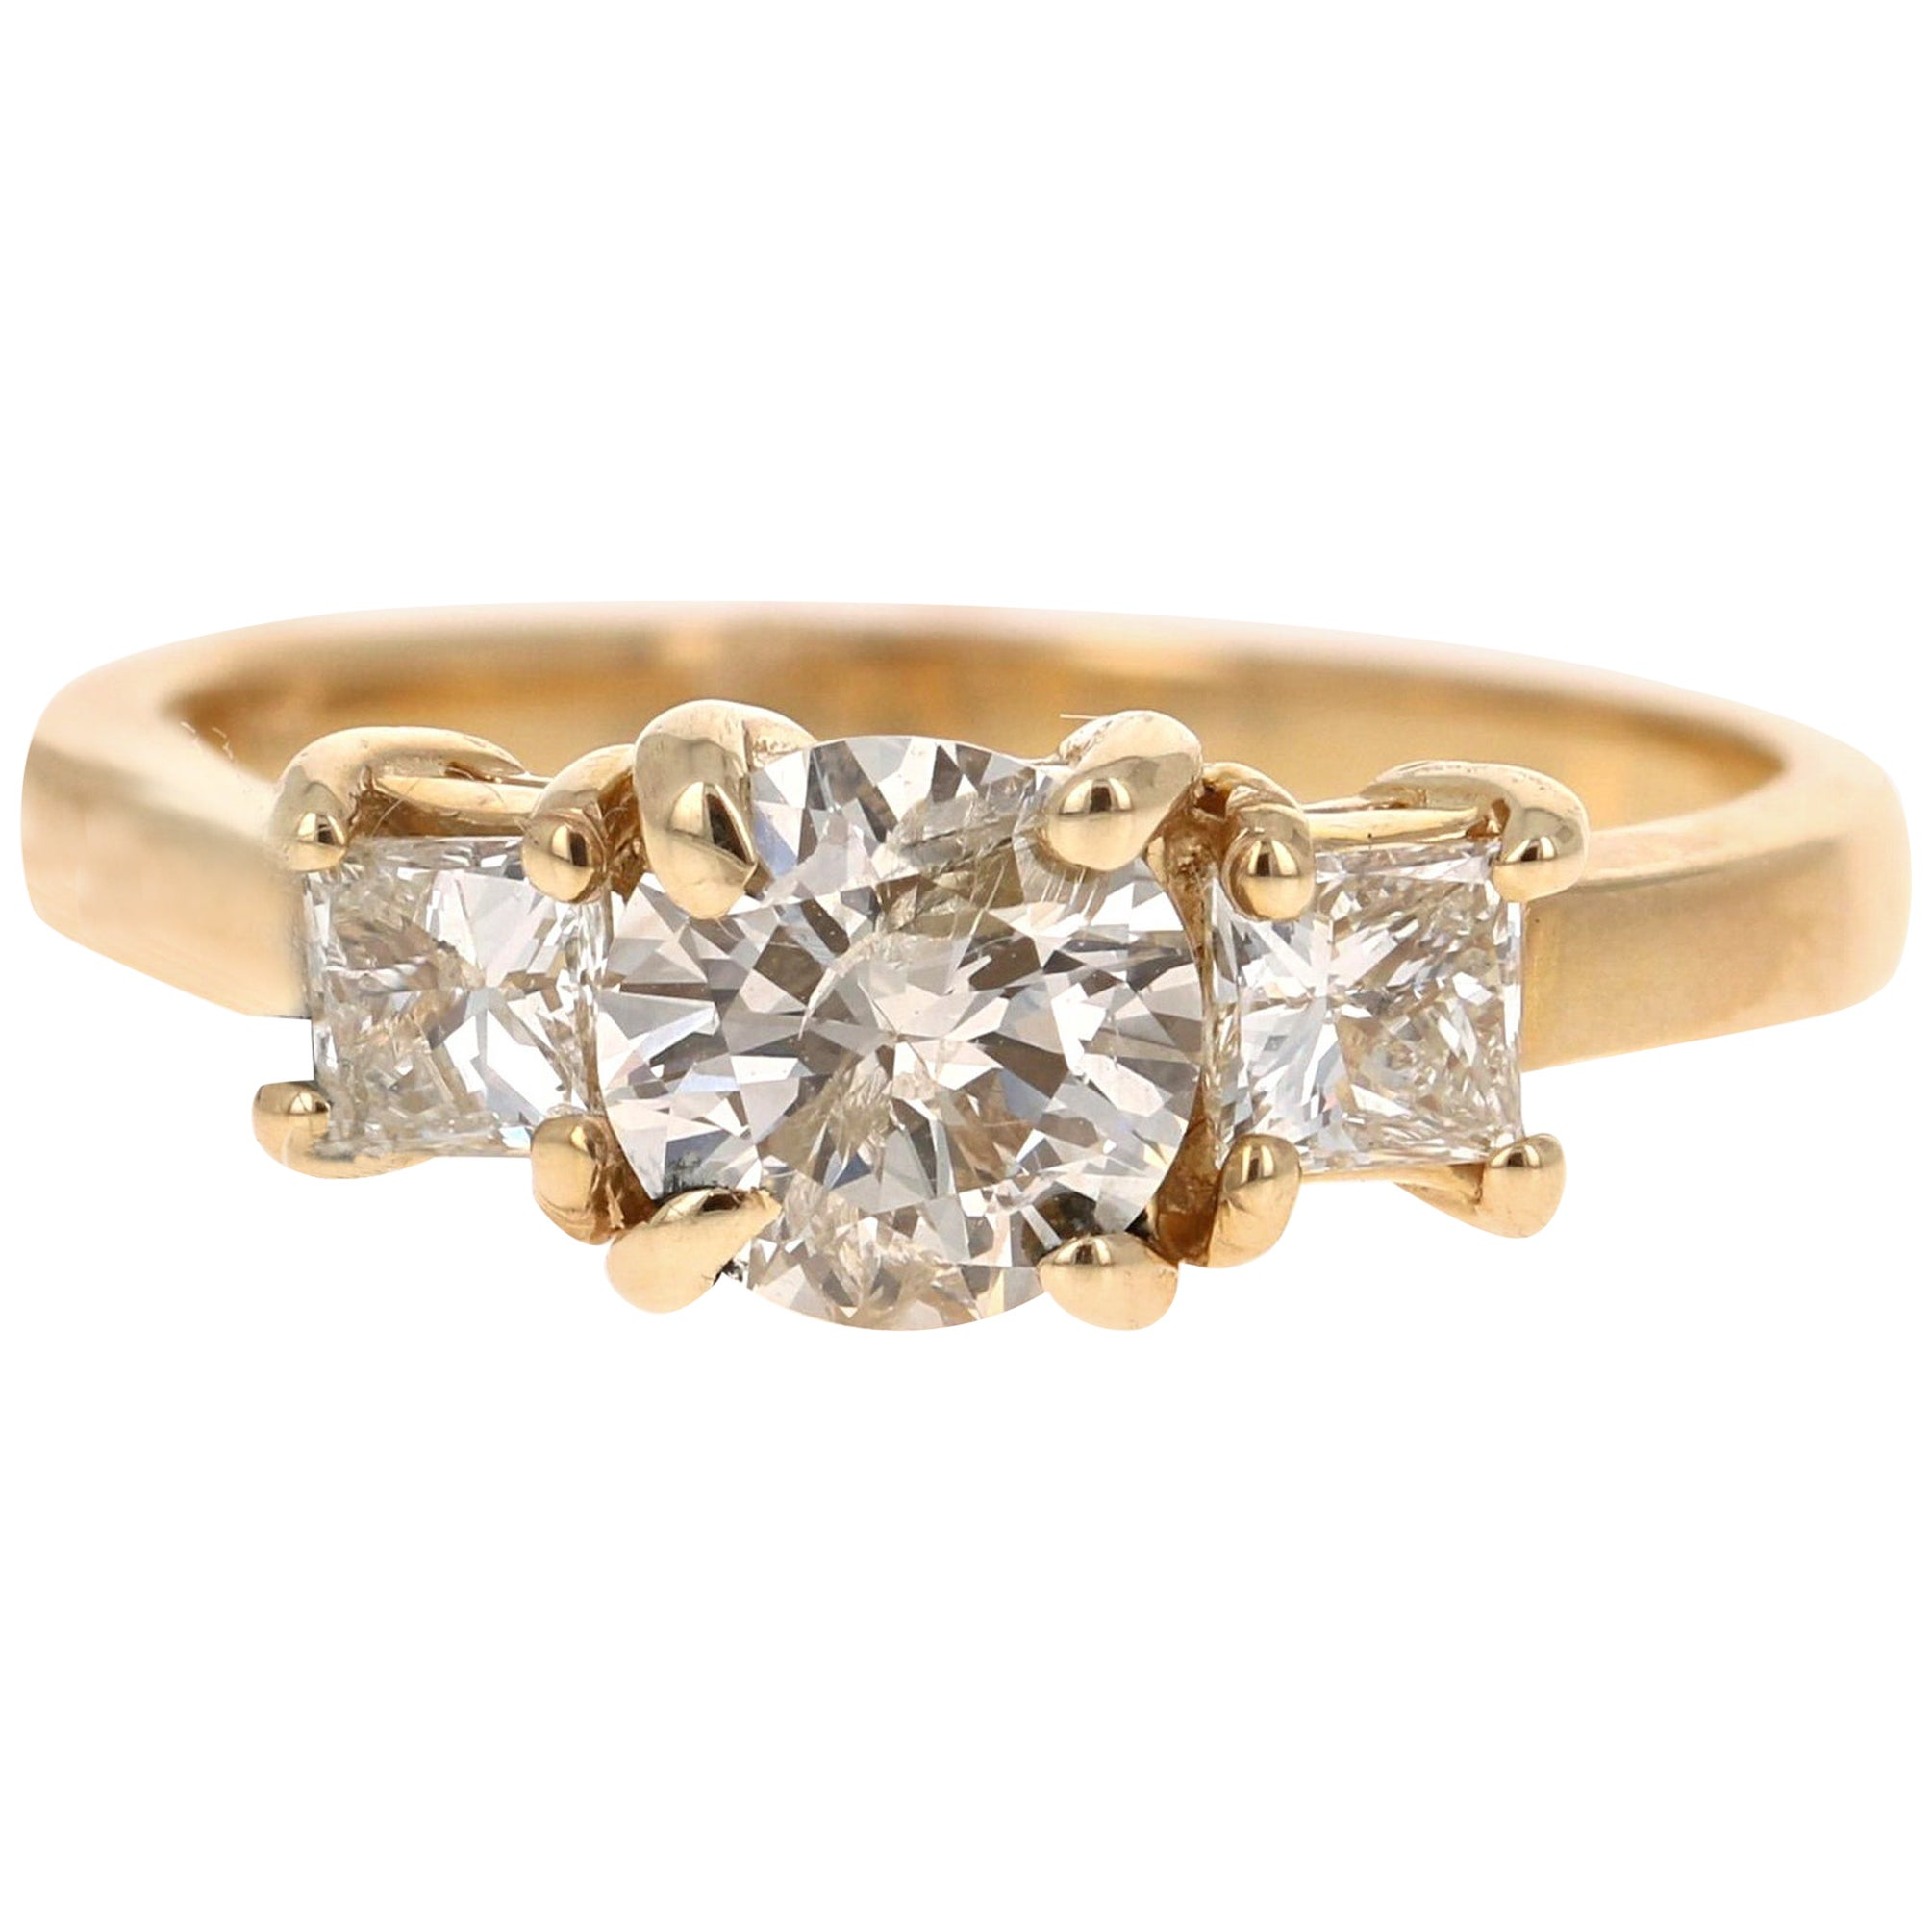 1.22 Carat Three-Stone Diamond 14 Karat Yellow Gold Engagement Ring